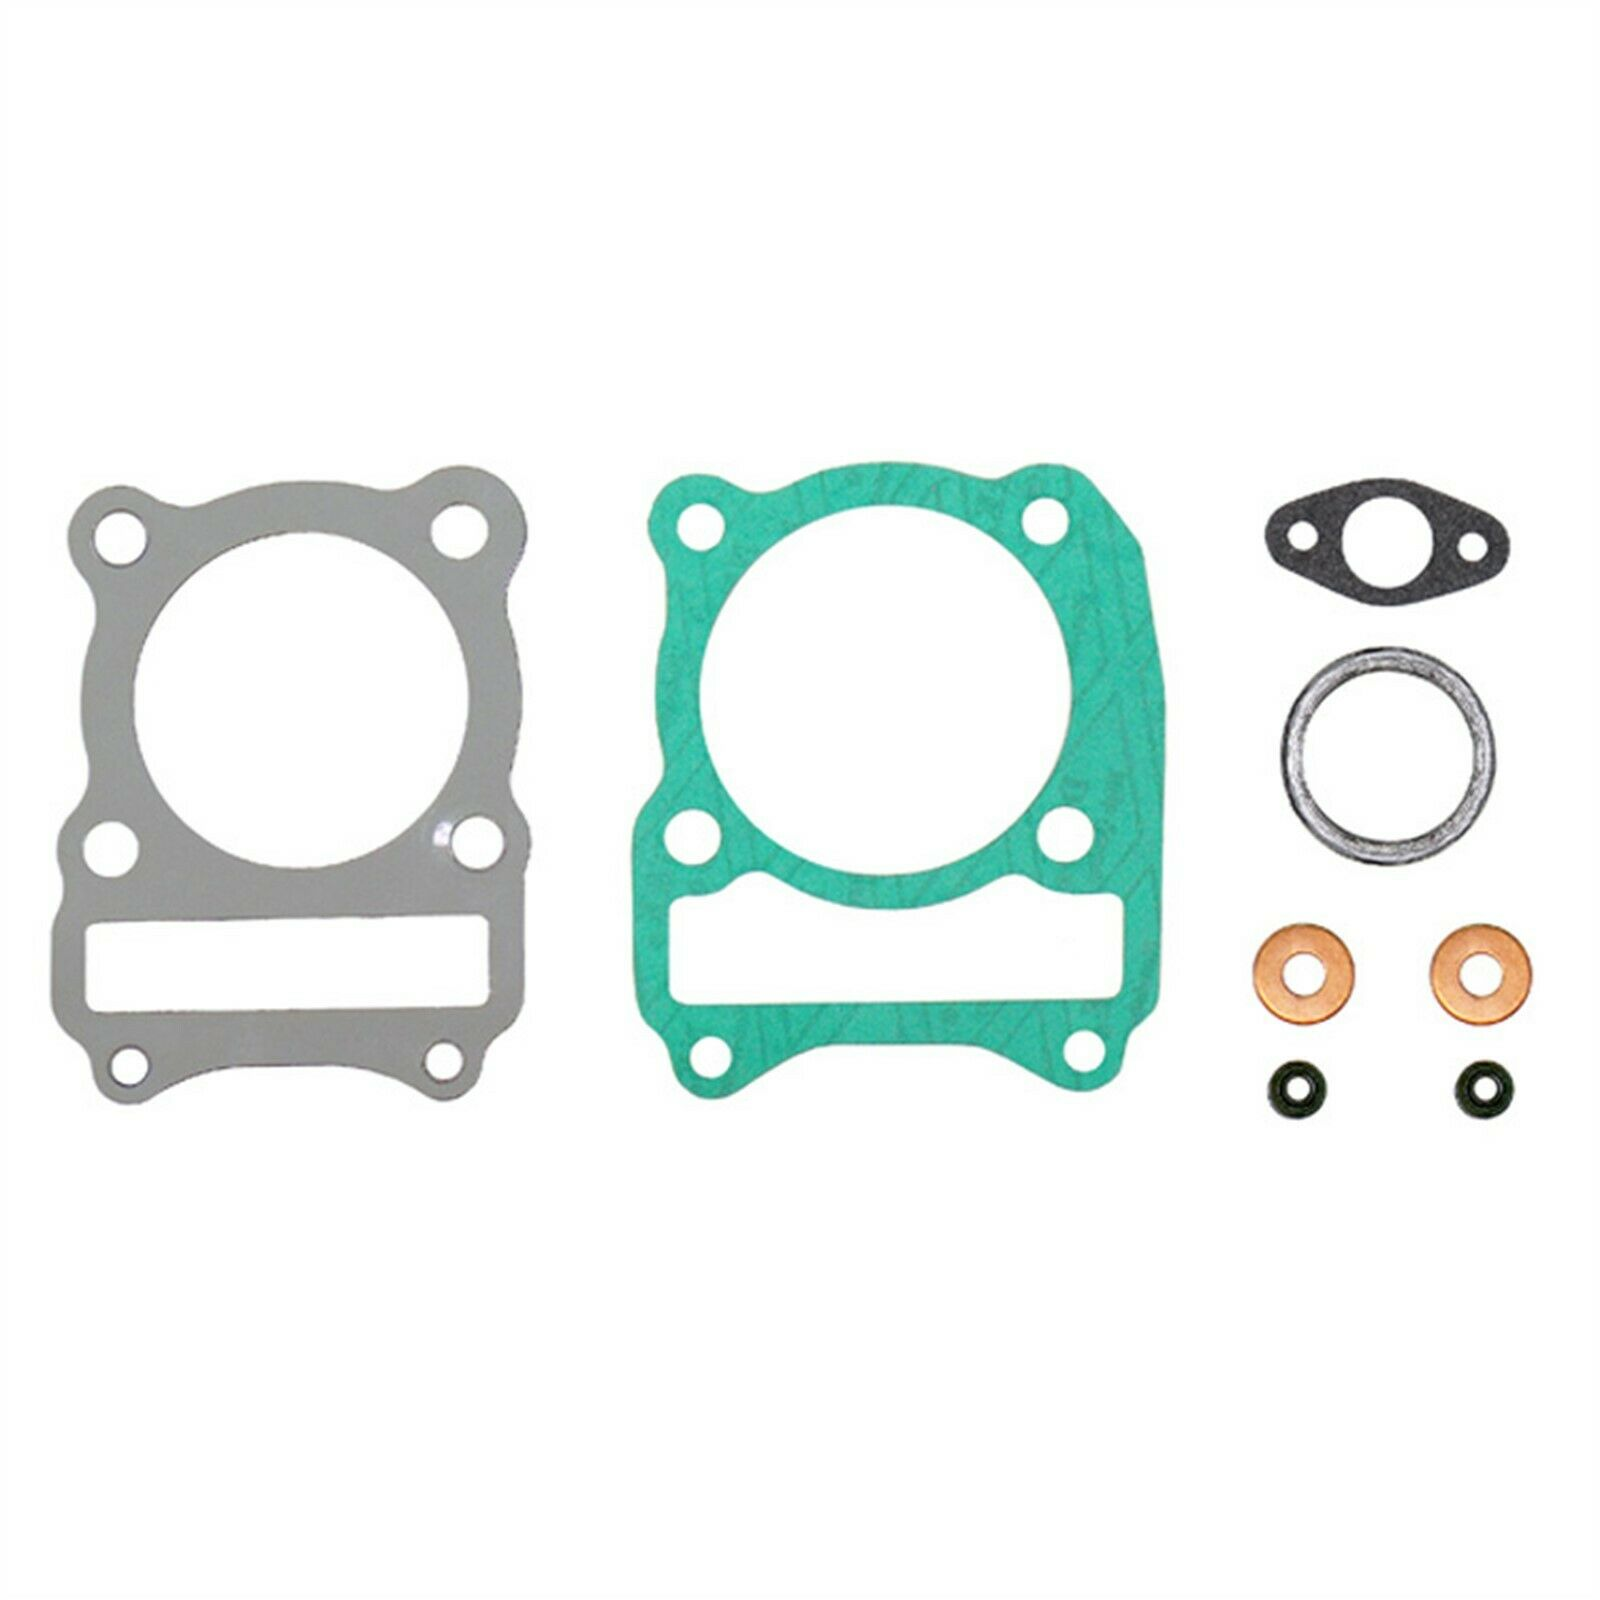 Namura NA-20005T Top-End Gasket Kit for 2012-16 Kawasaki KVF300 Brute Force